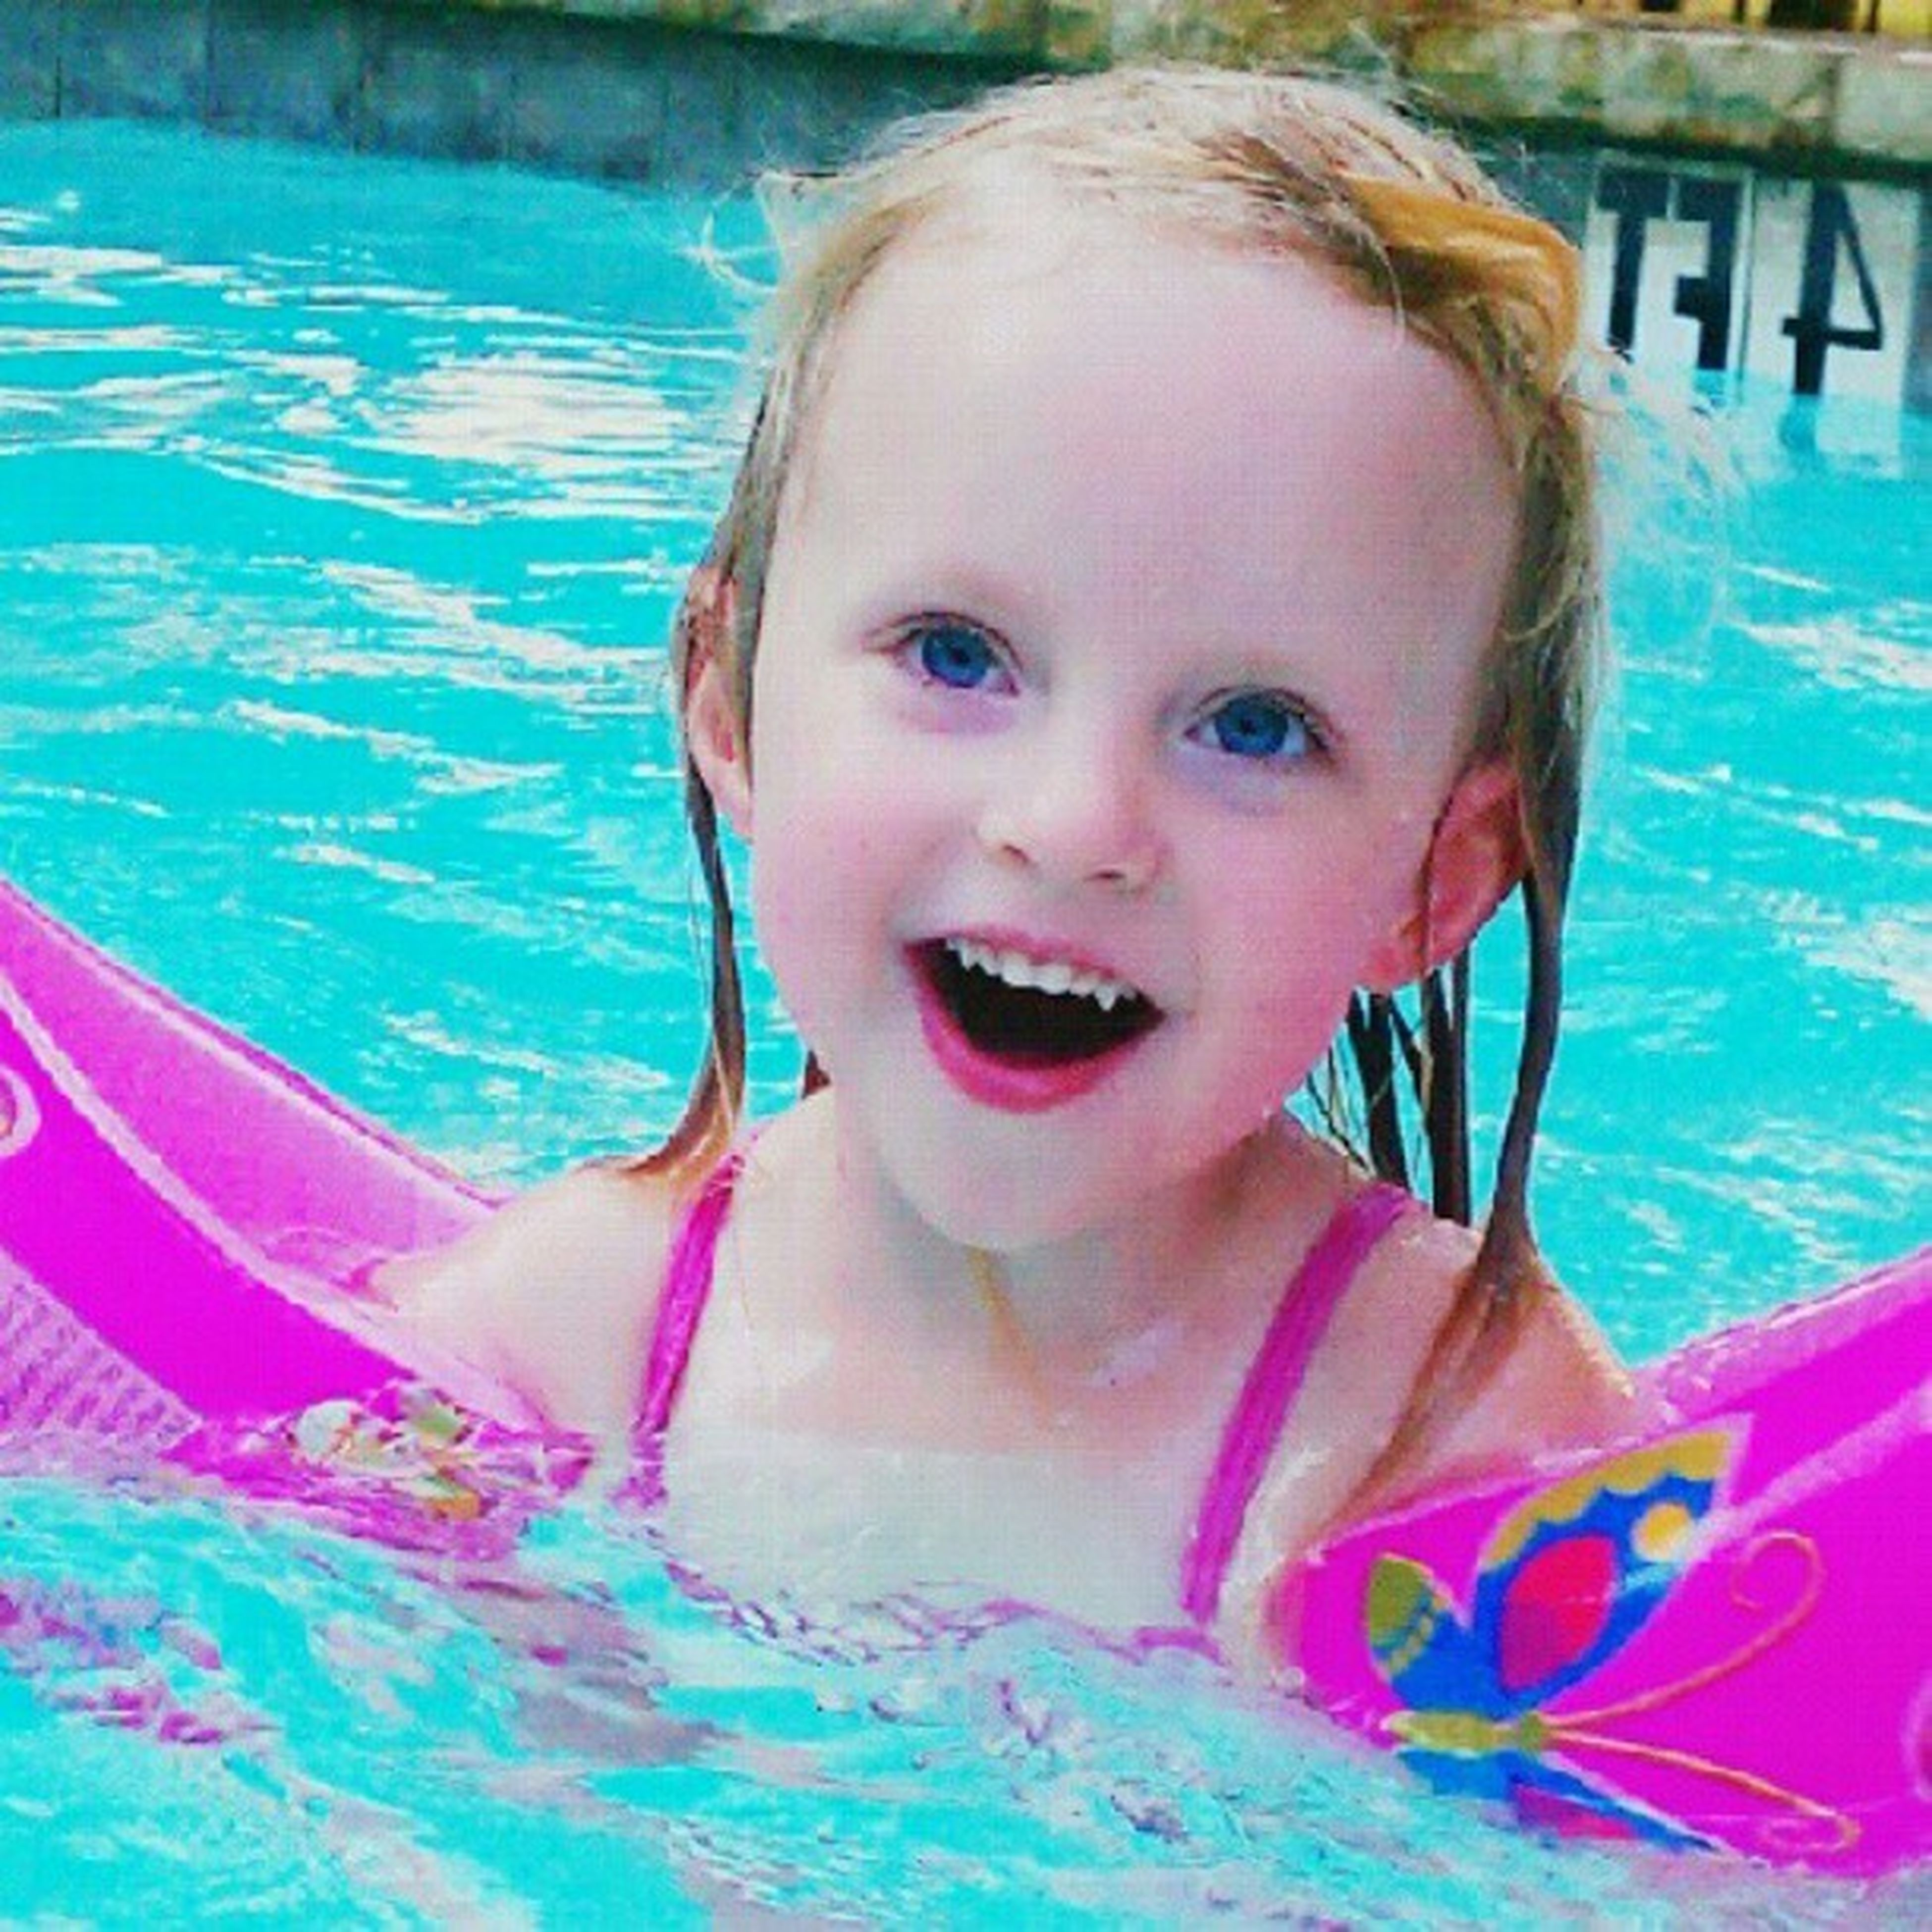 childhood, person, elementary age, water, innocence, portrait, leisure activity, girls, looking at camera, cute, lifestyles, headshot, swimming pool, boys, blue, smiling, front view, happiness